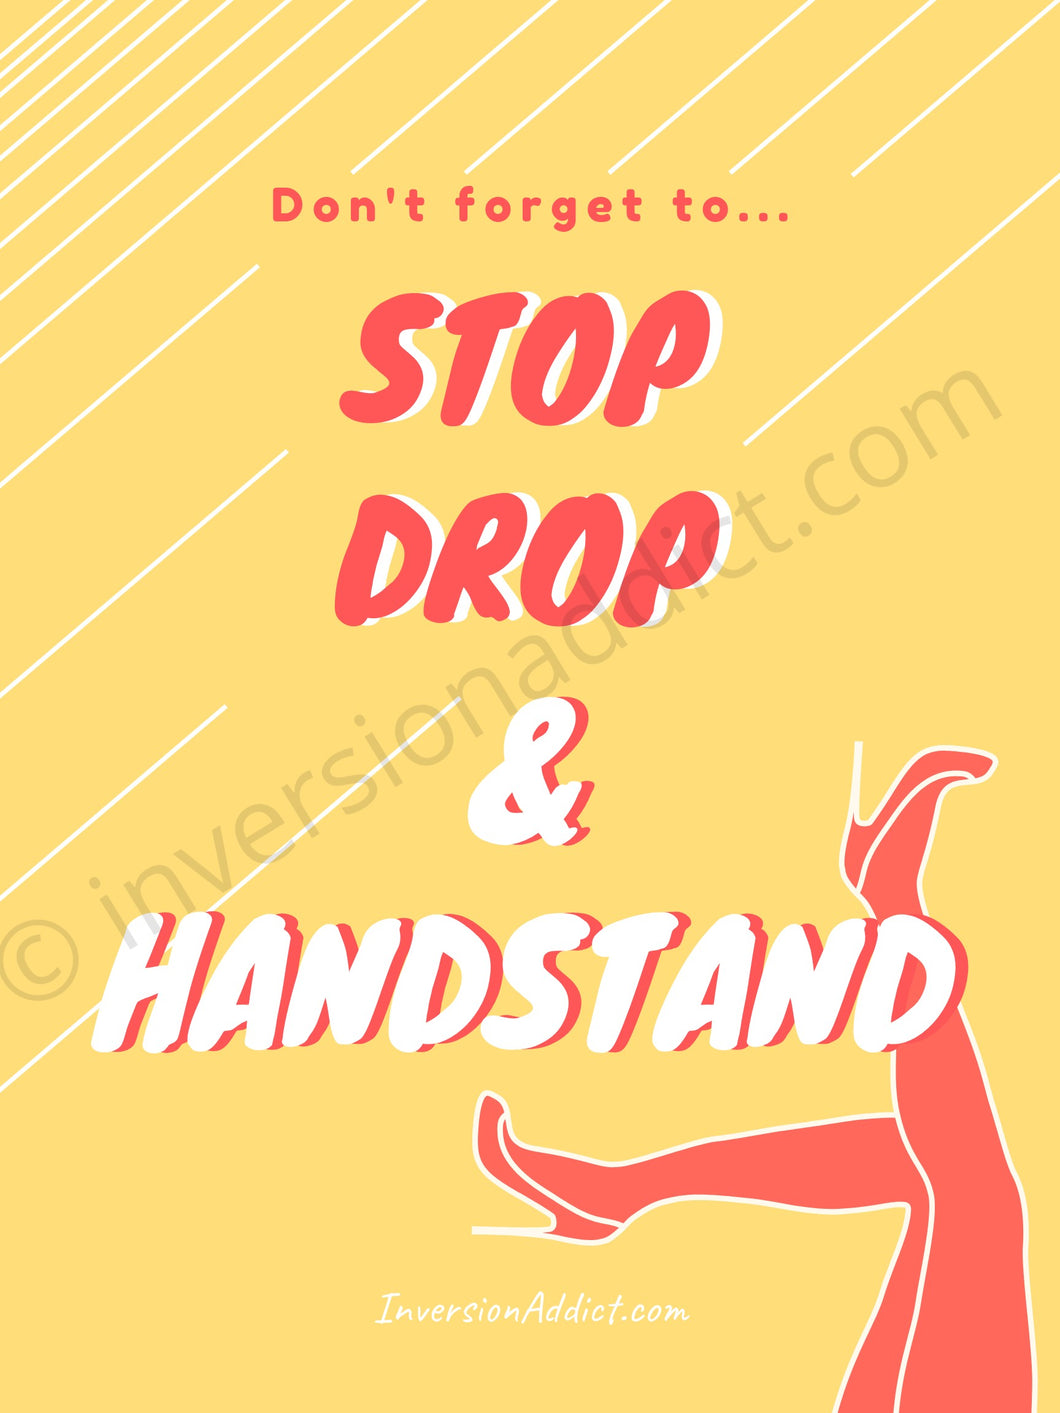 Stop Drop & Handstand! - InversionAddict Coaching Handstand Tutorials